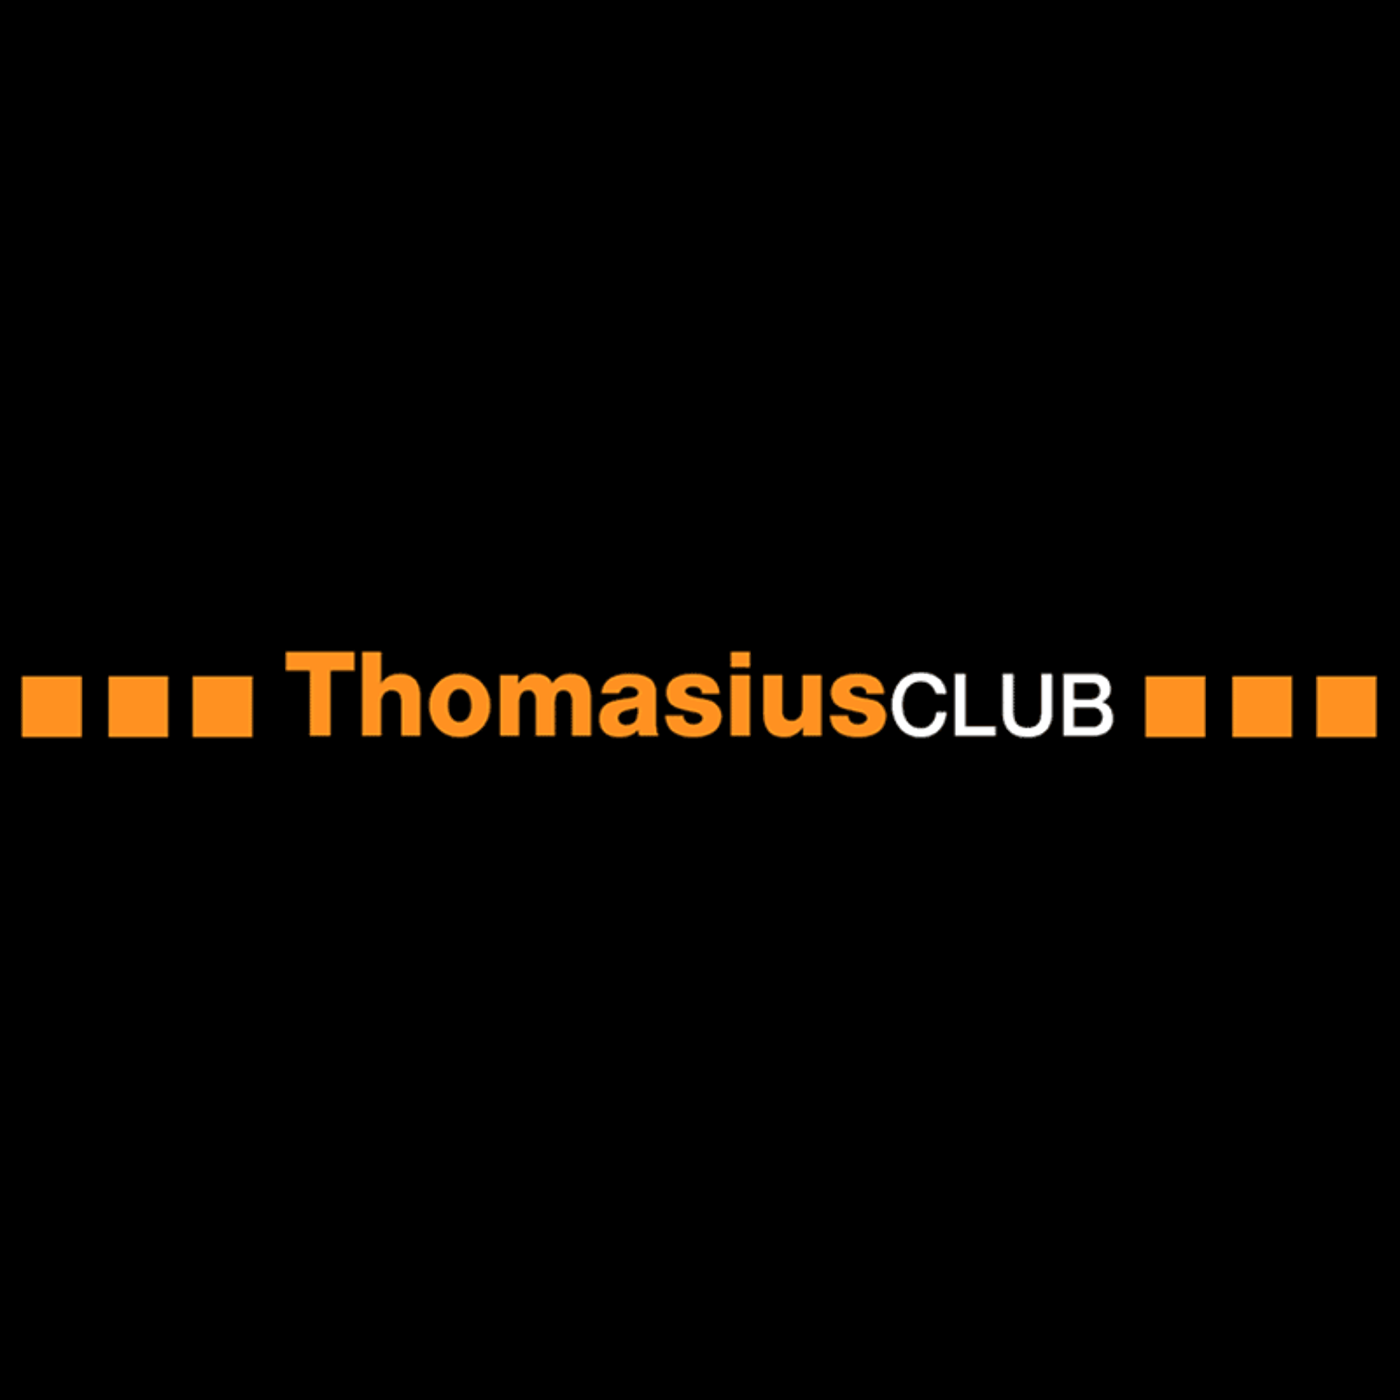 Thomasius Club